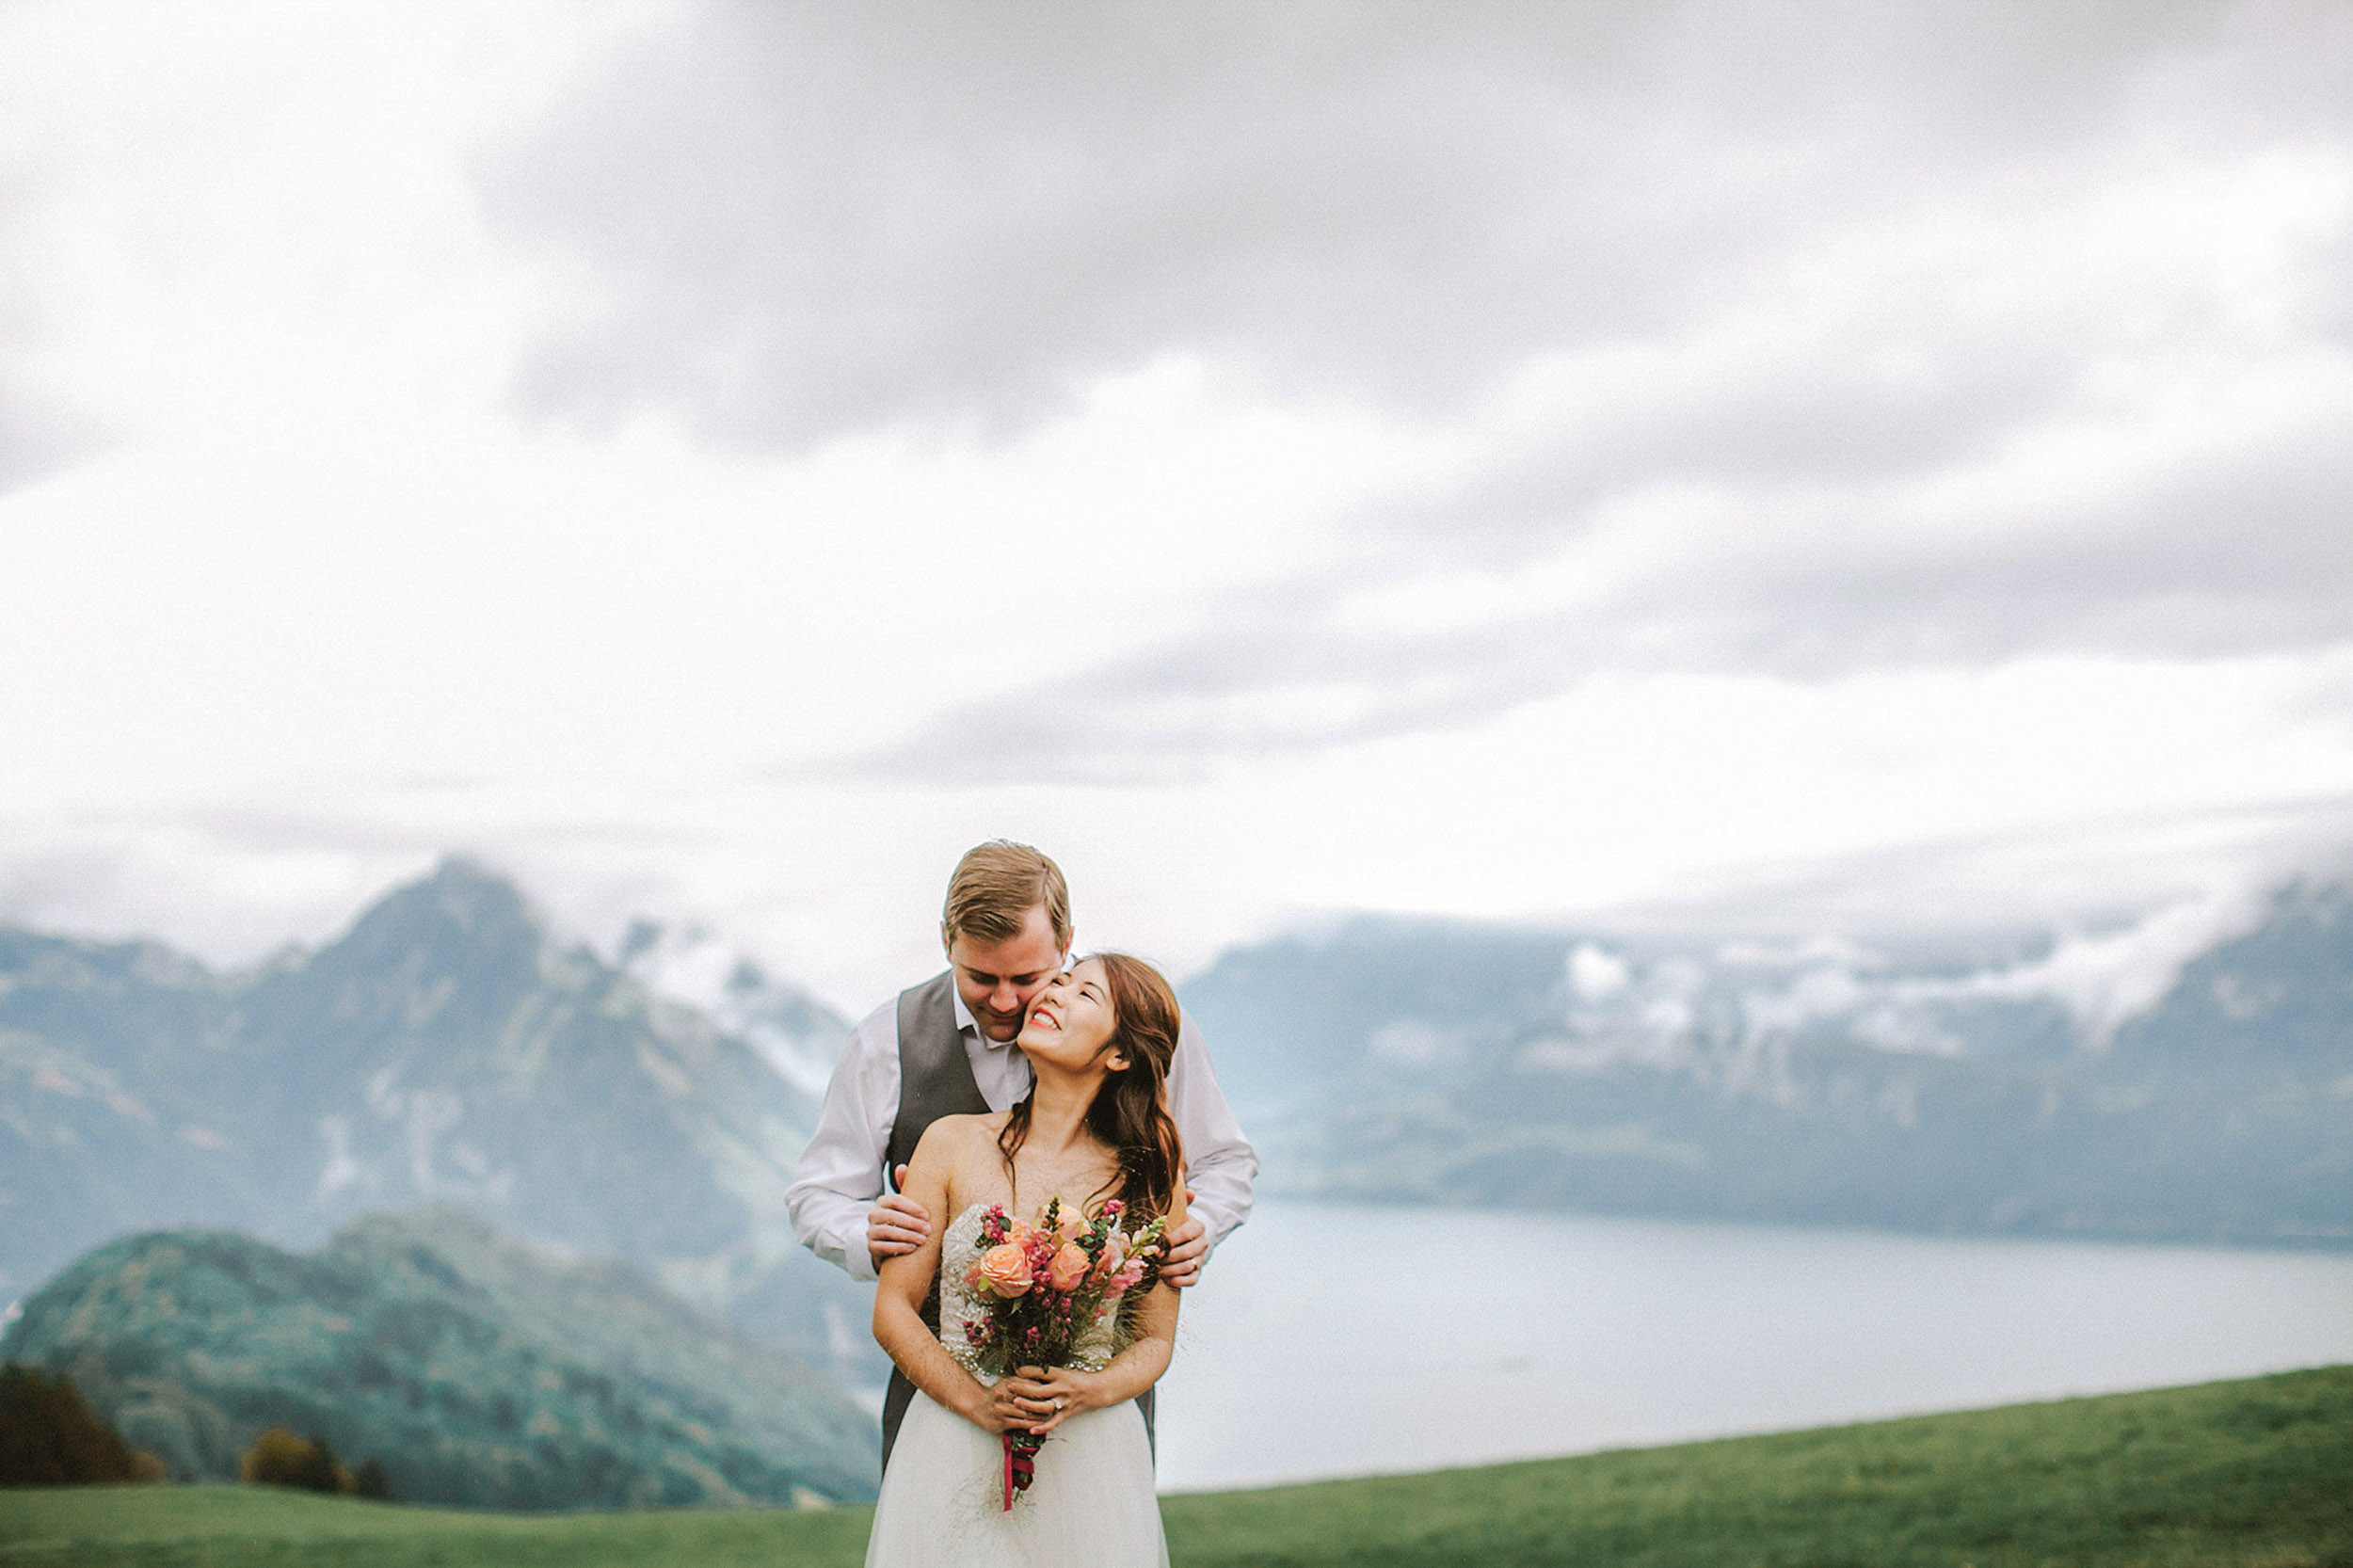 hochzeitsfotografie-schweiz_wedding-photographer-switzerland-europe_Bendik-Photography-121